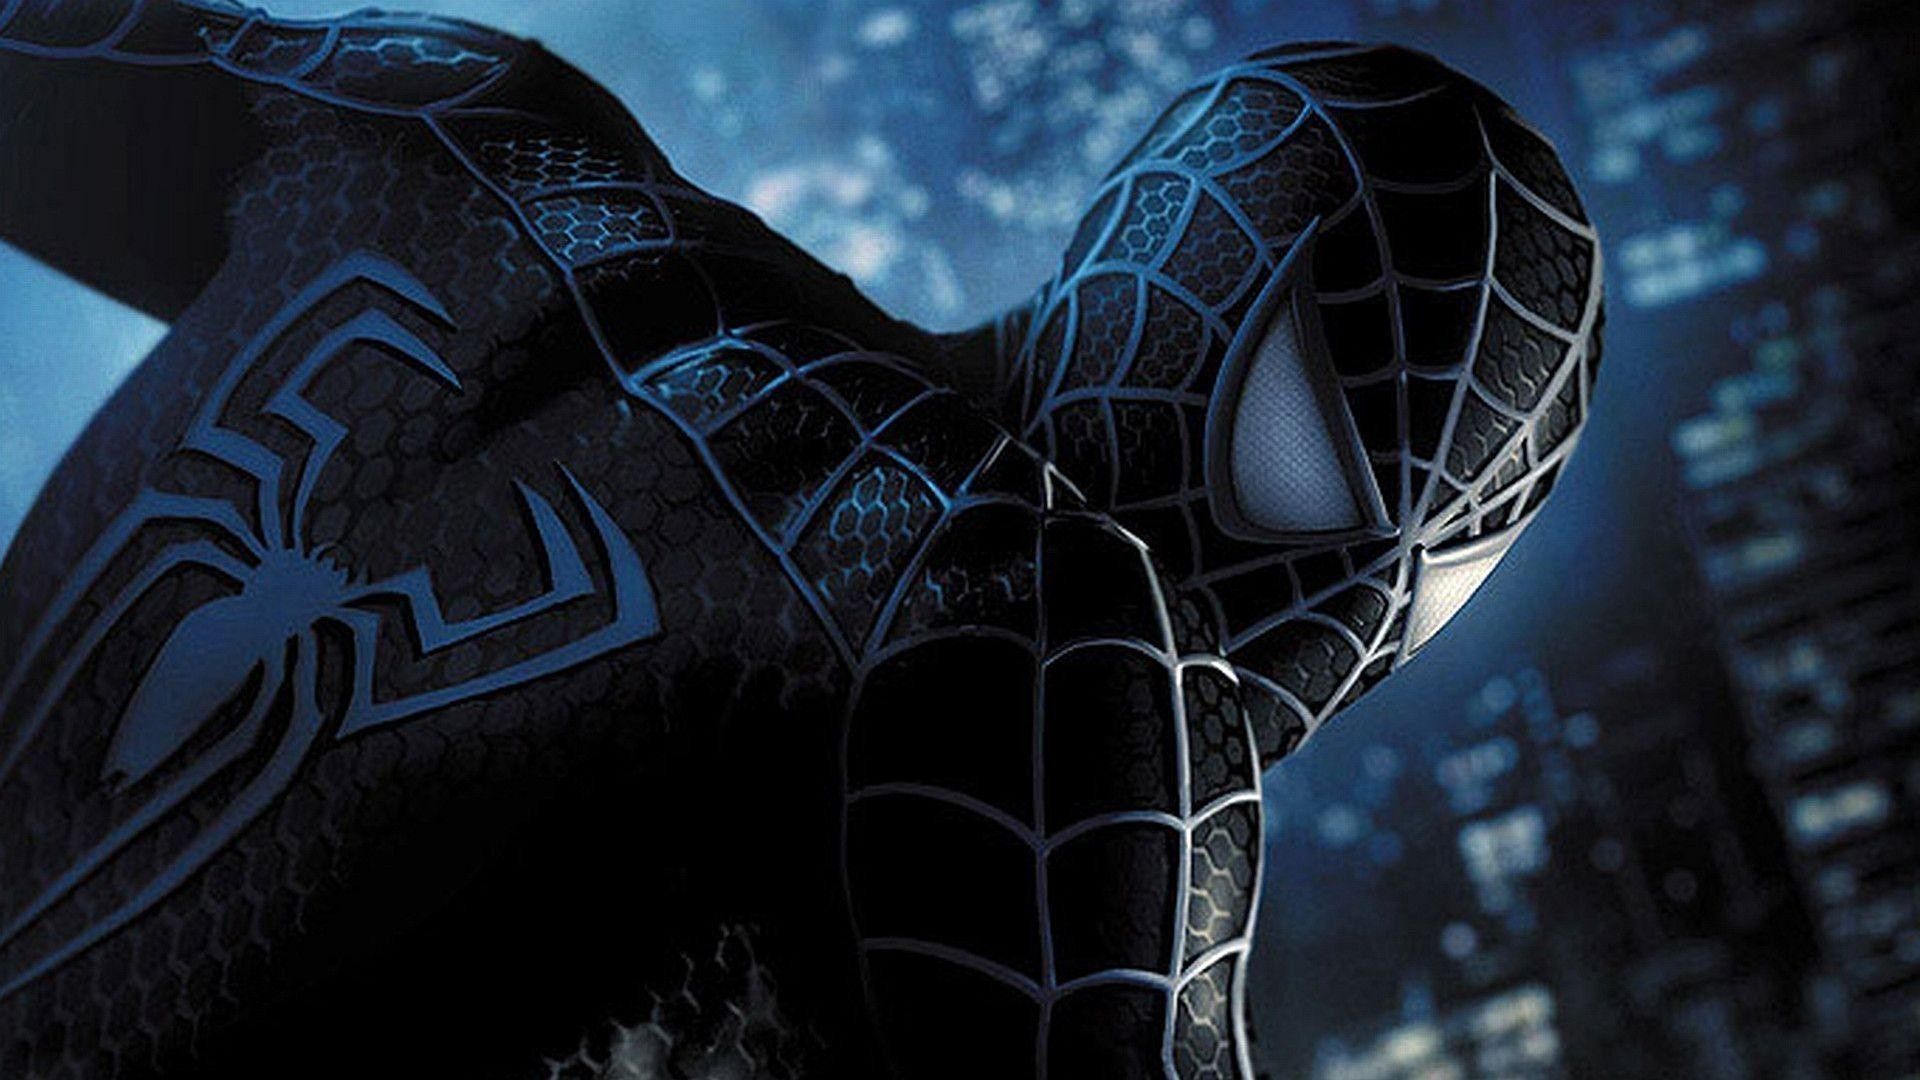 1920x1080  Spiderman-3-Wallpapers-HD-Picture Spiderman HD free wallpapers .